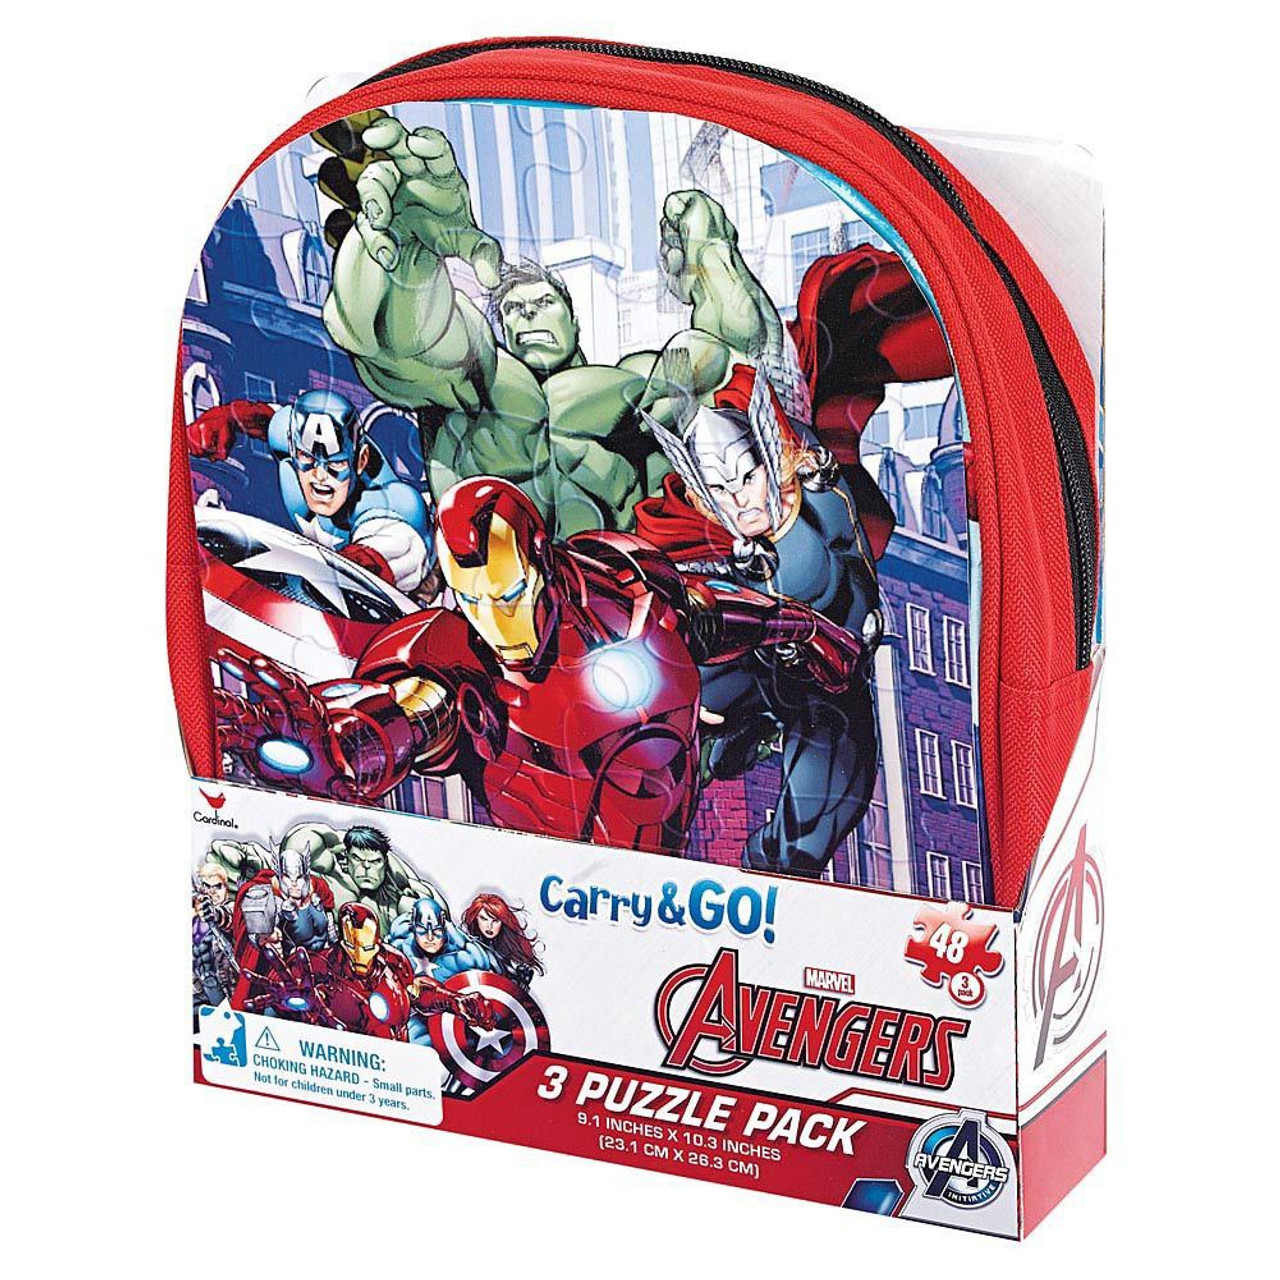 AVENGERS 3 PUZZLE PACK